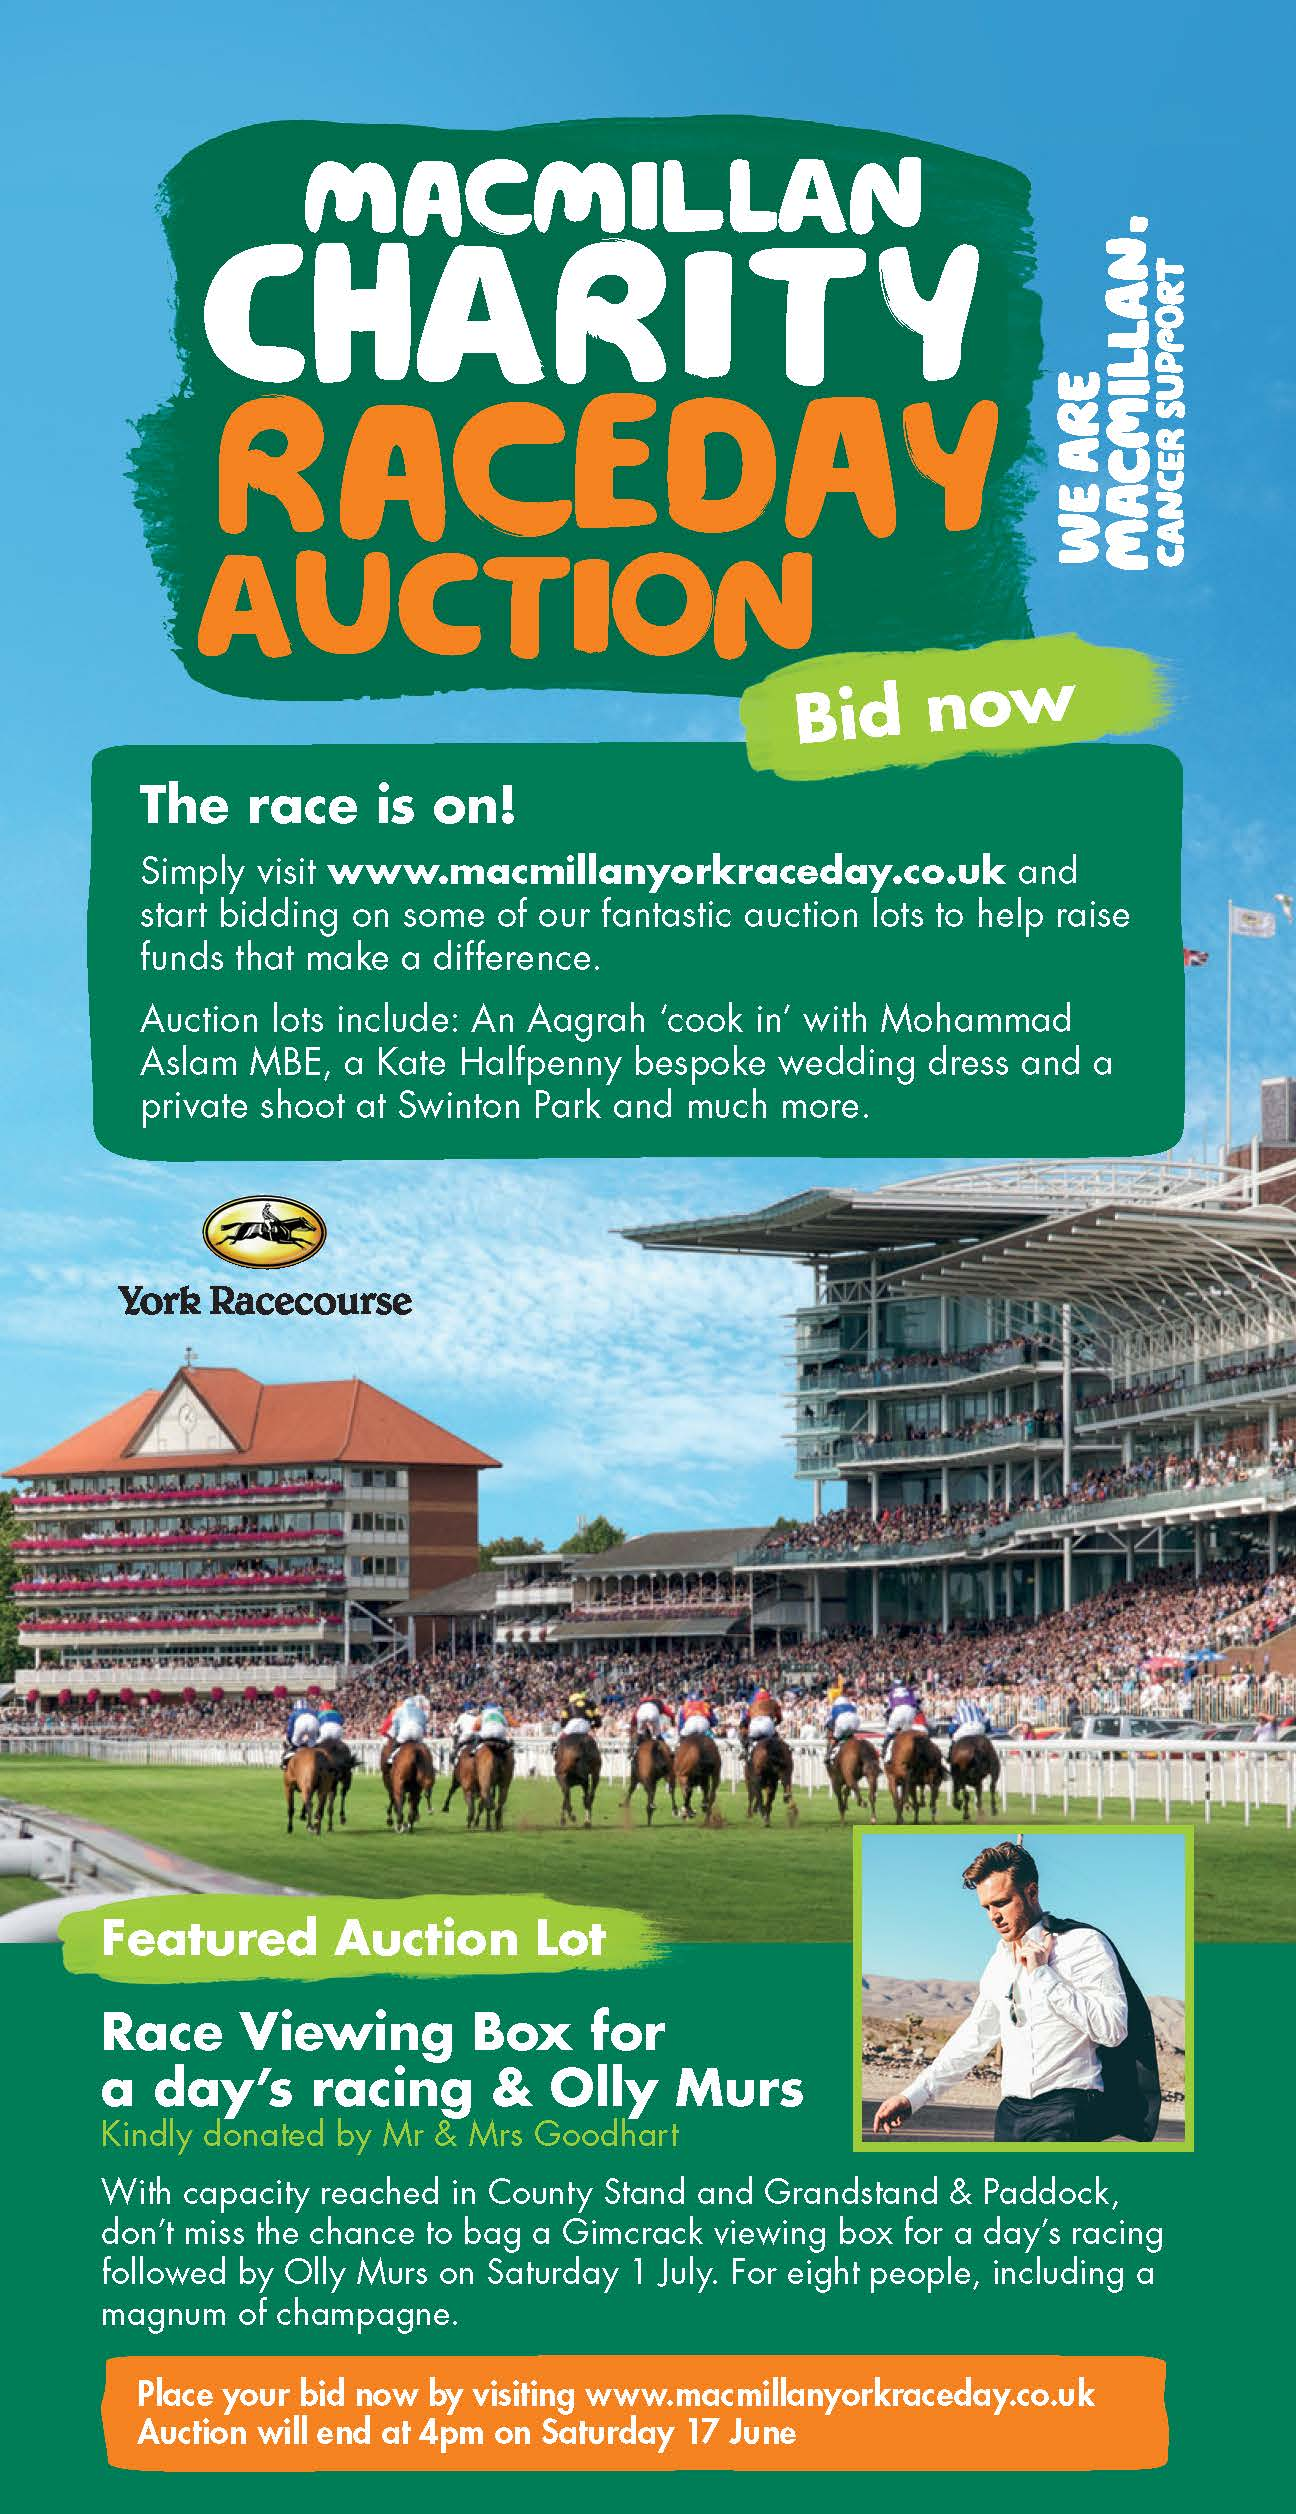 Macmillan Charity Raceday